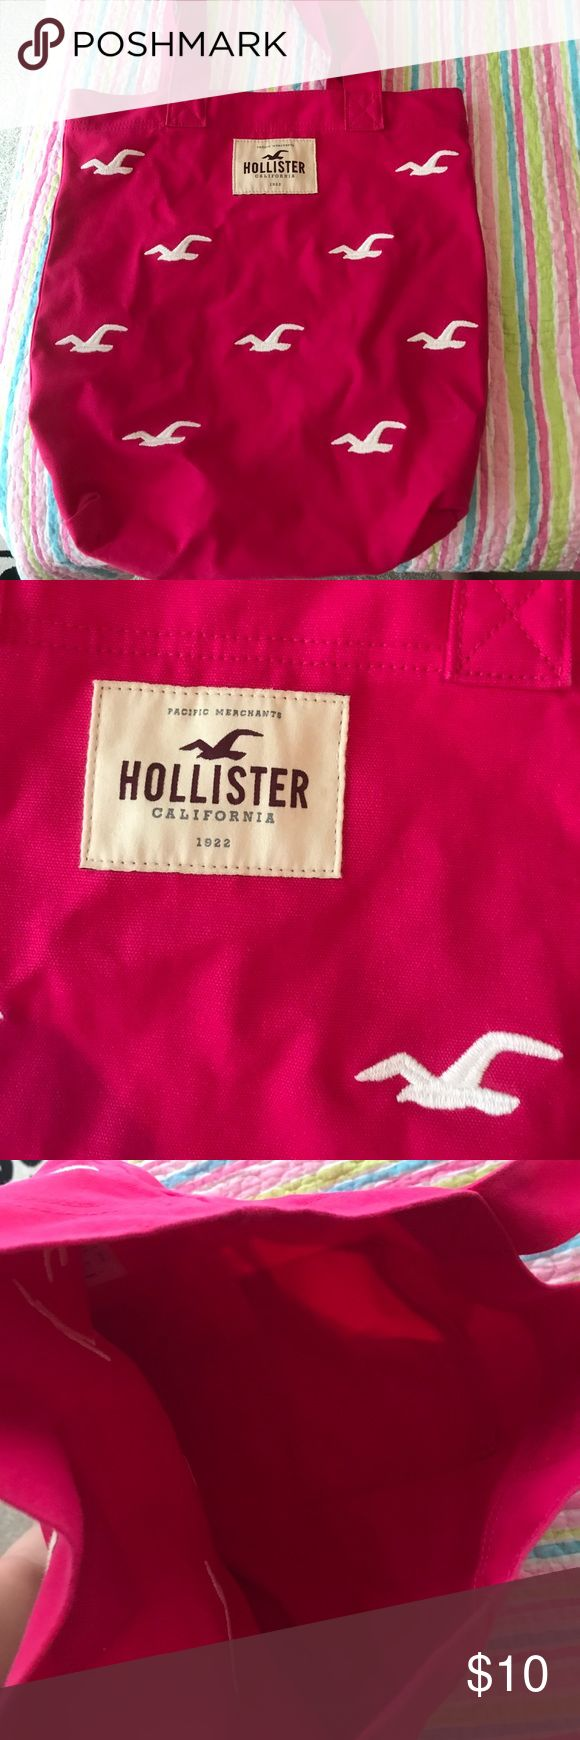 "17"" pink hollister tote As a light blue stain on the back(as pictured) but overall in good condition Hollister Bags Totes"